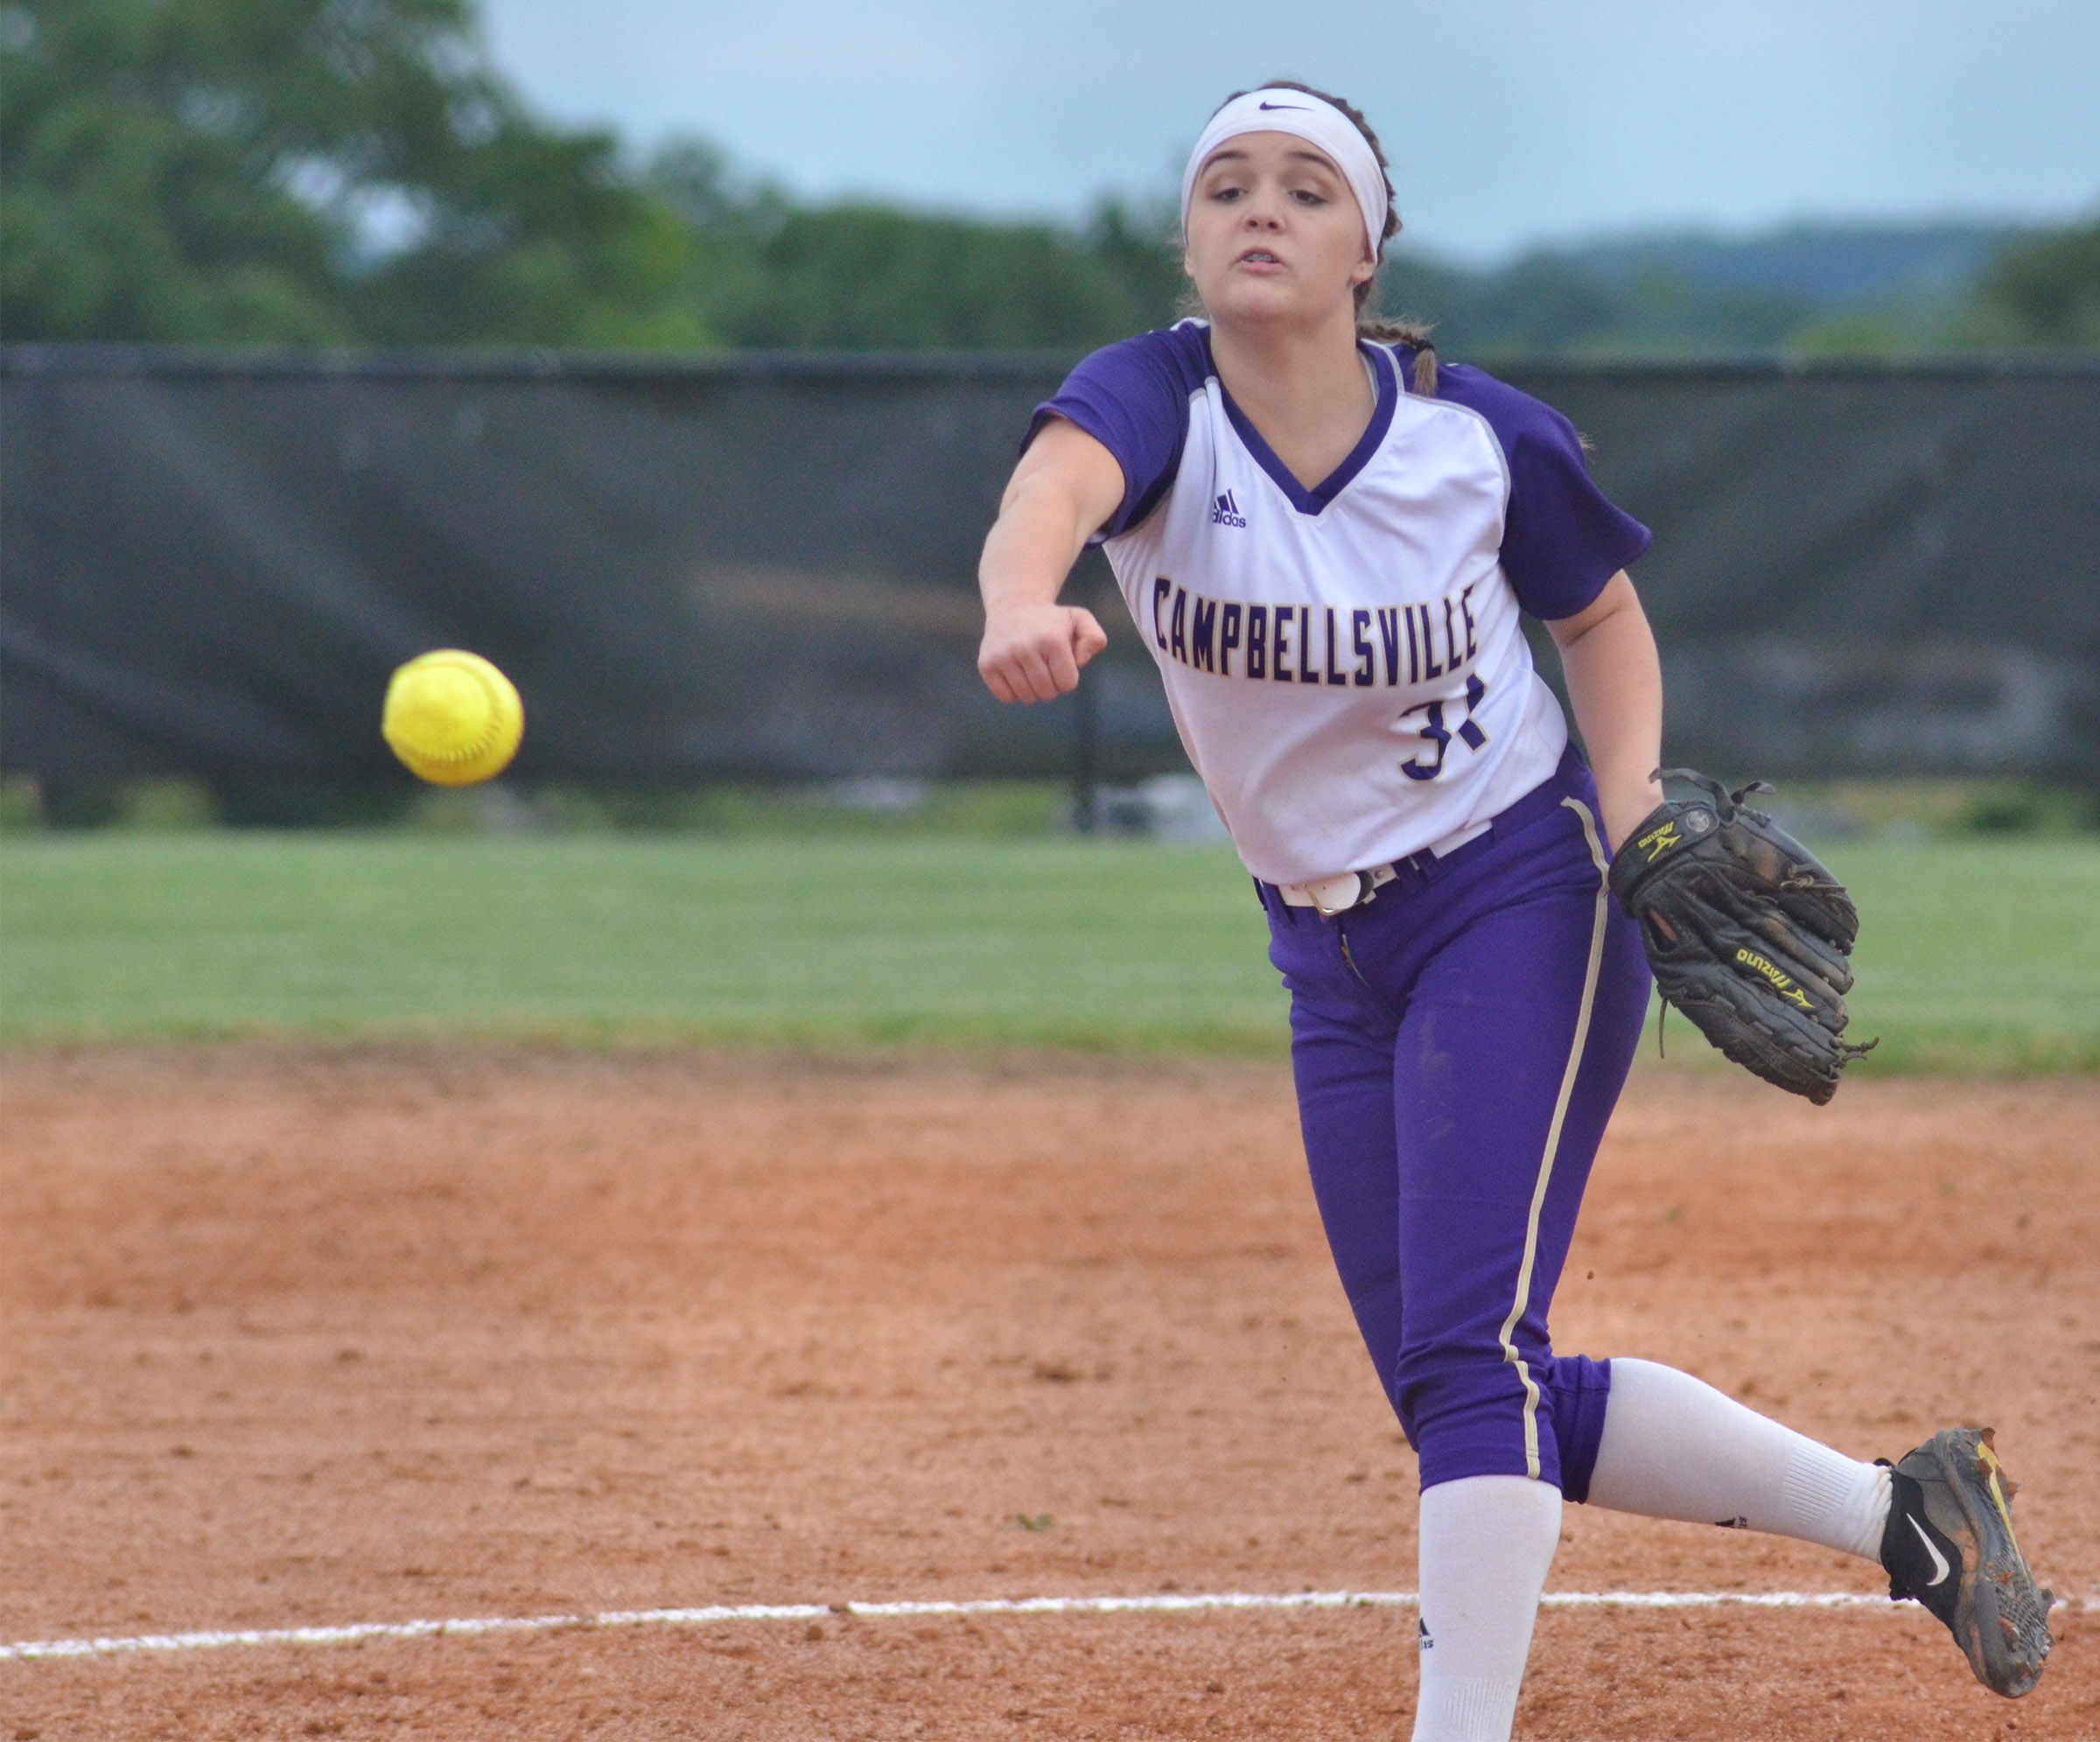 Campbellsville Middle School eighth-grader Kenzi Forbis pitches.